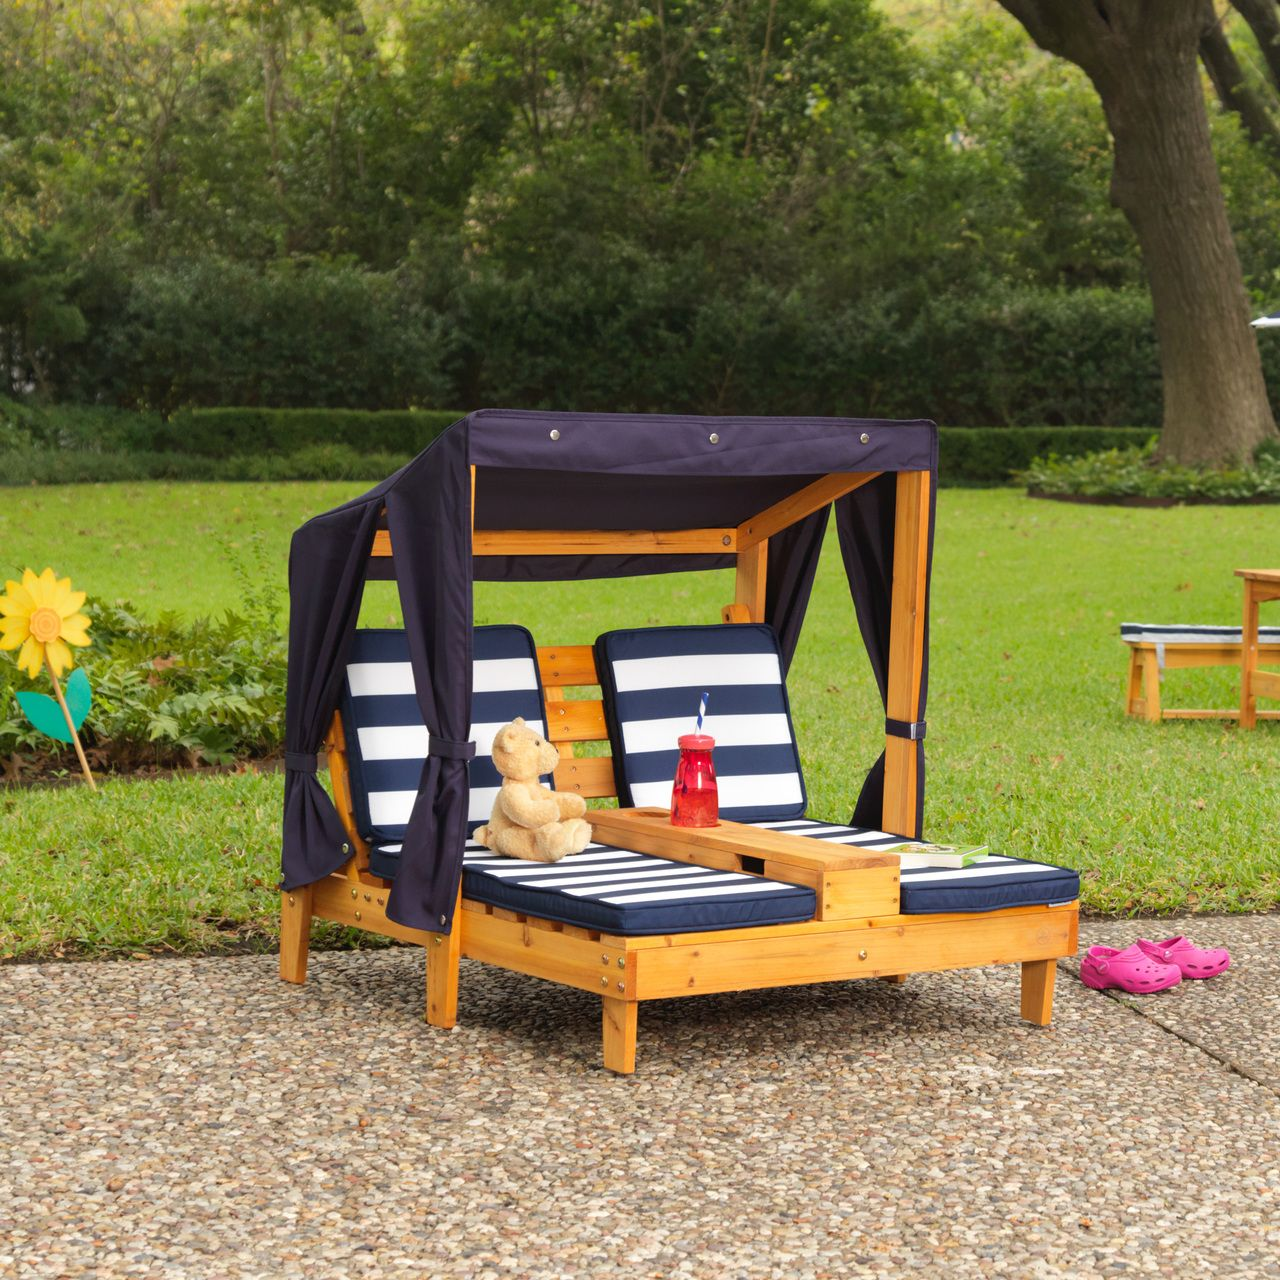 Kidkraft Double Chaise Lounger Honey And Navy Kids Outdoor